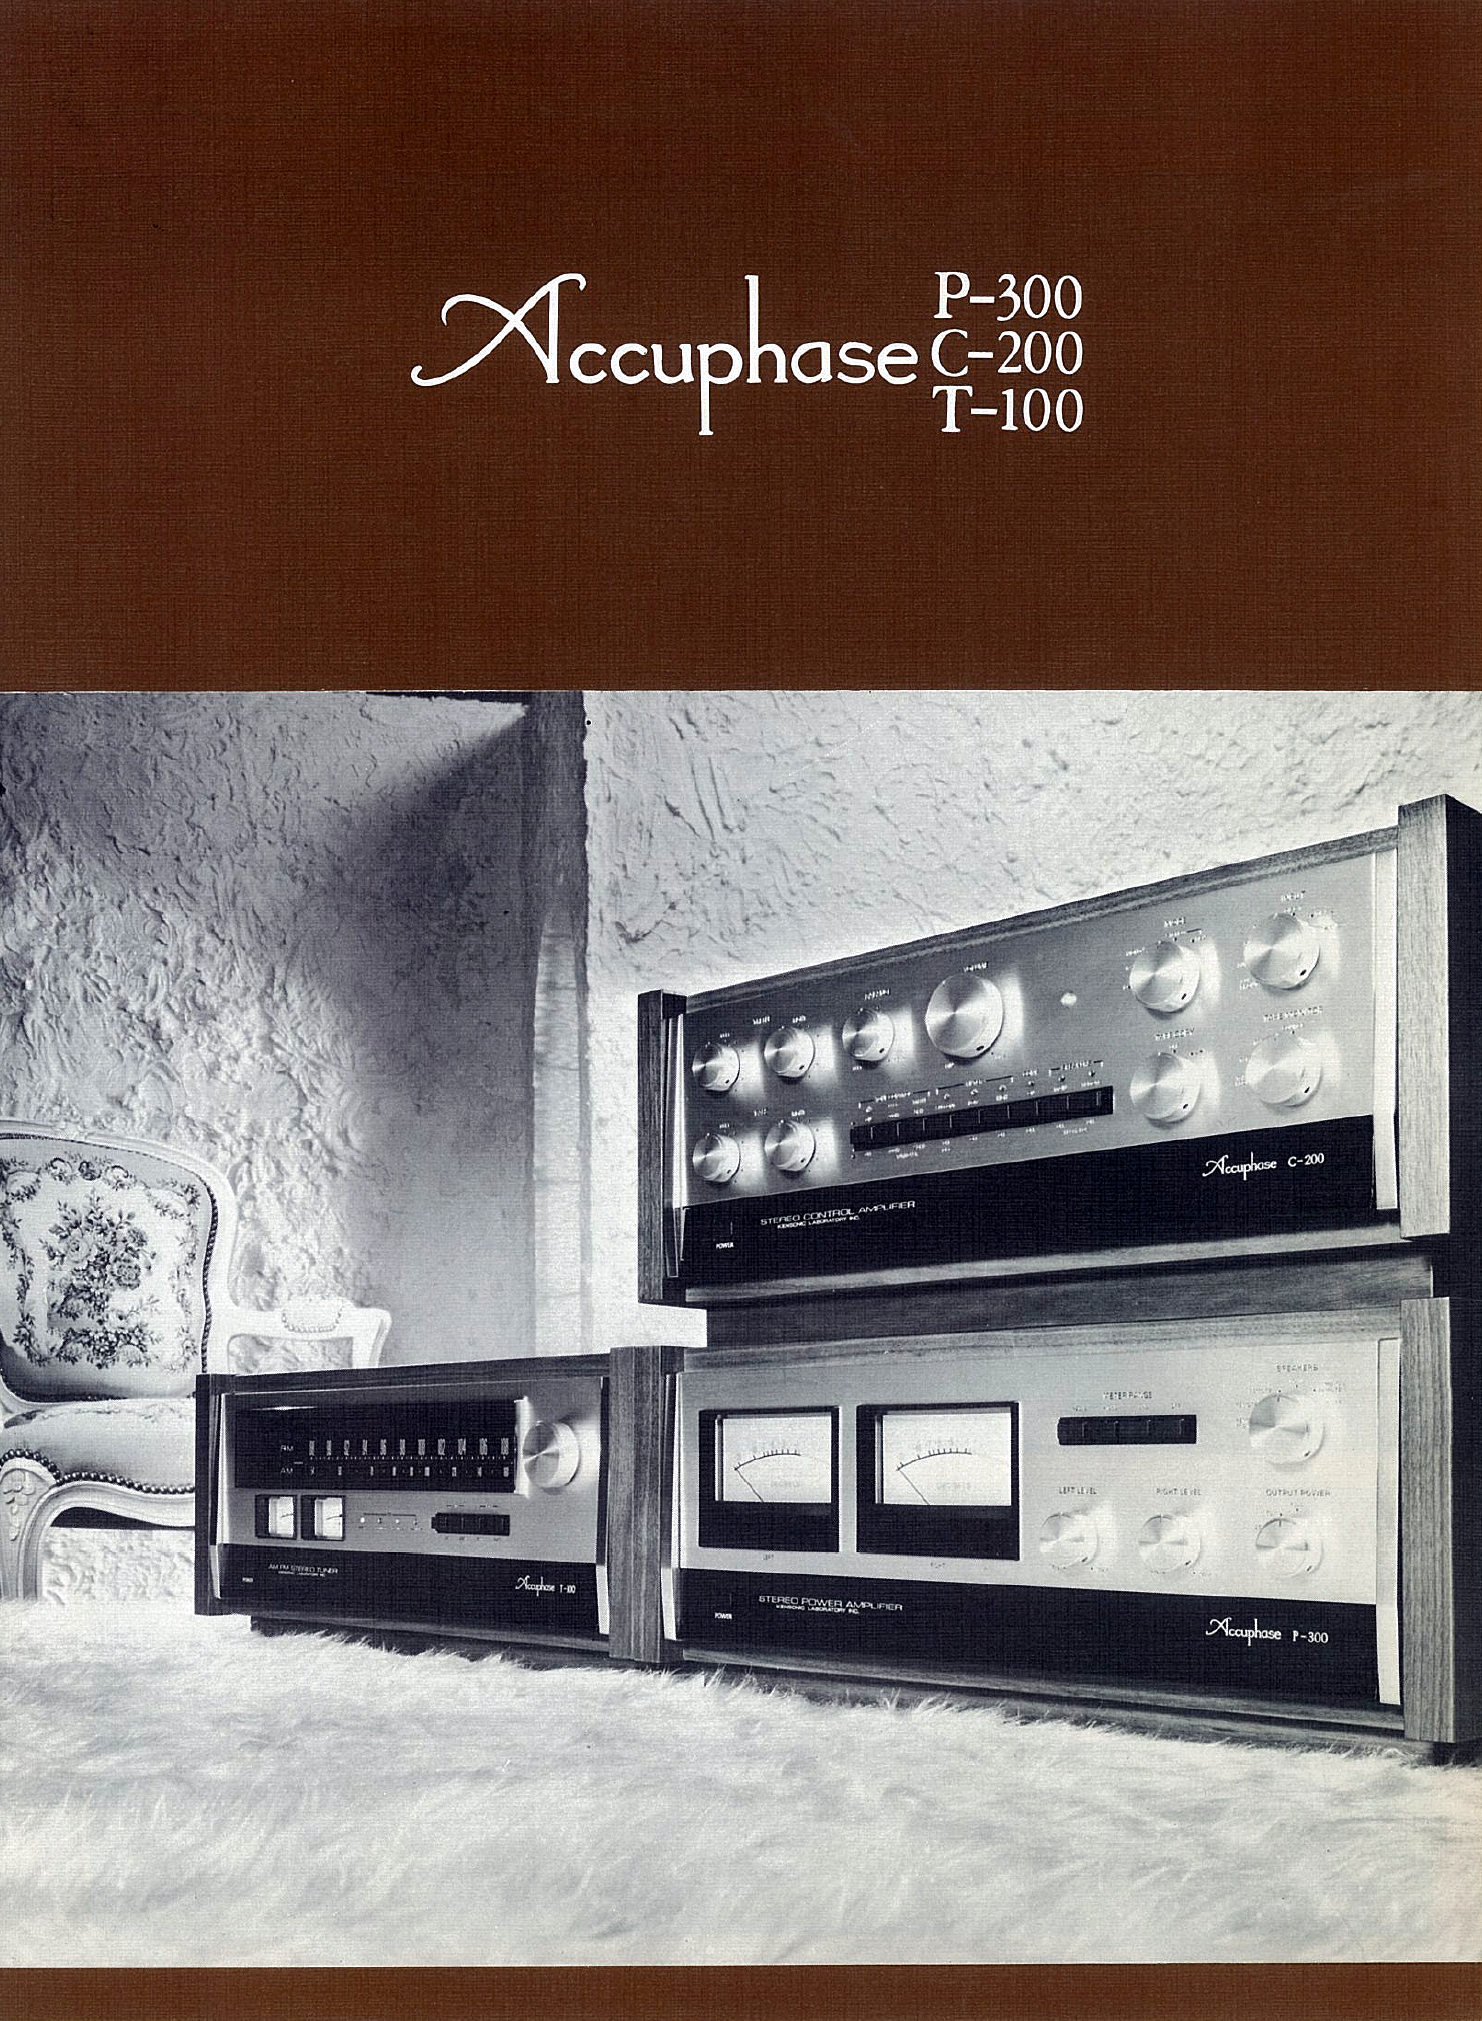 Accuphase C-200-P-300-T-100-1.jpg